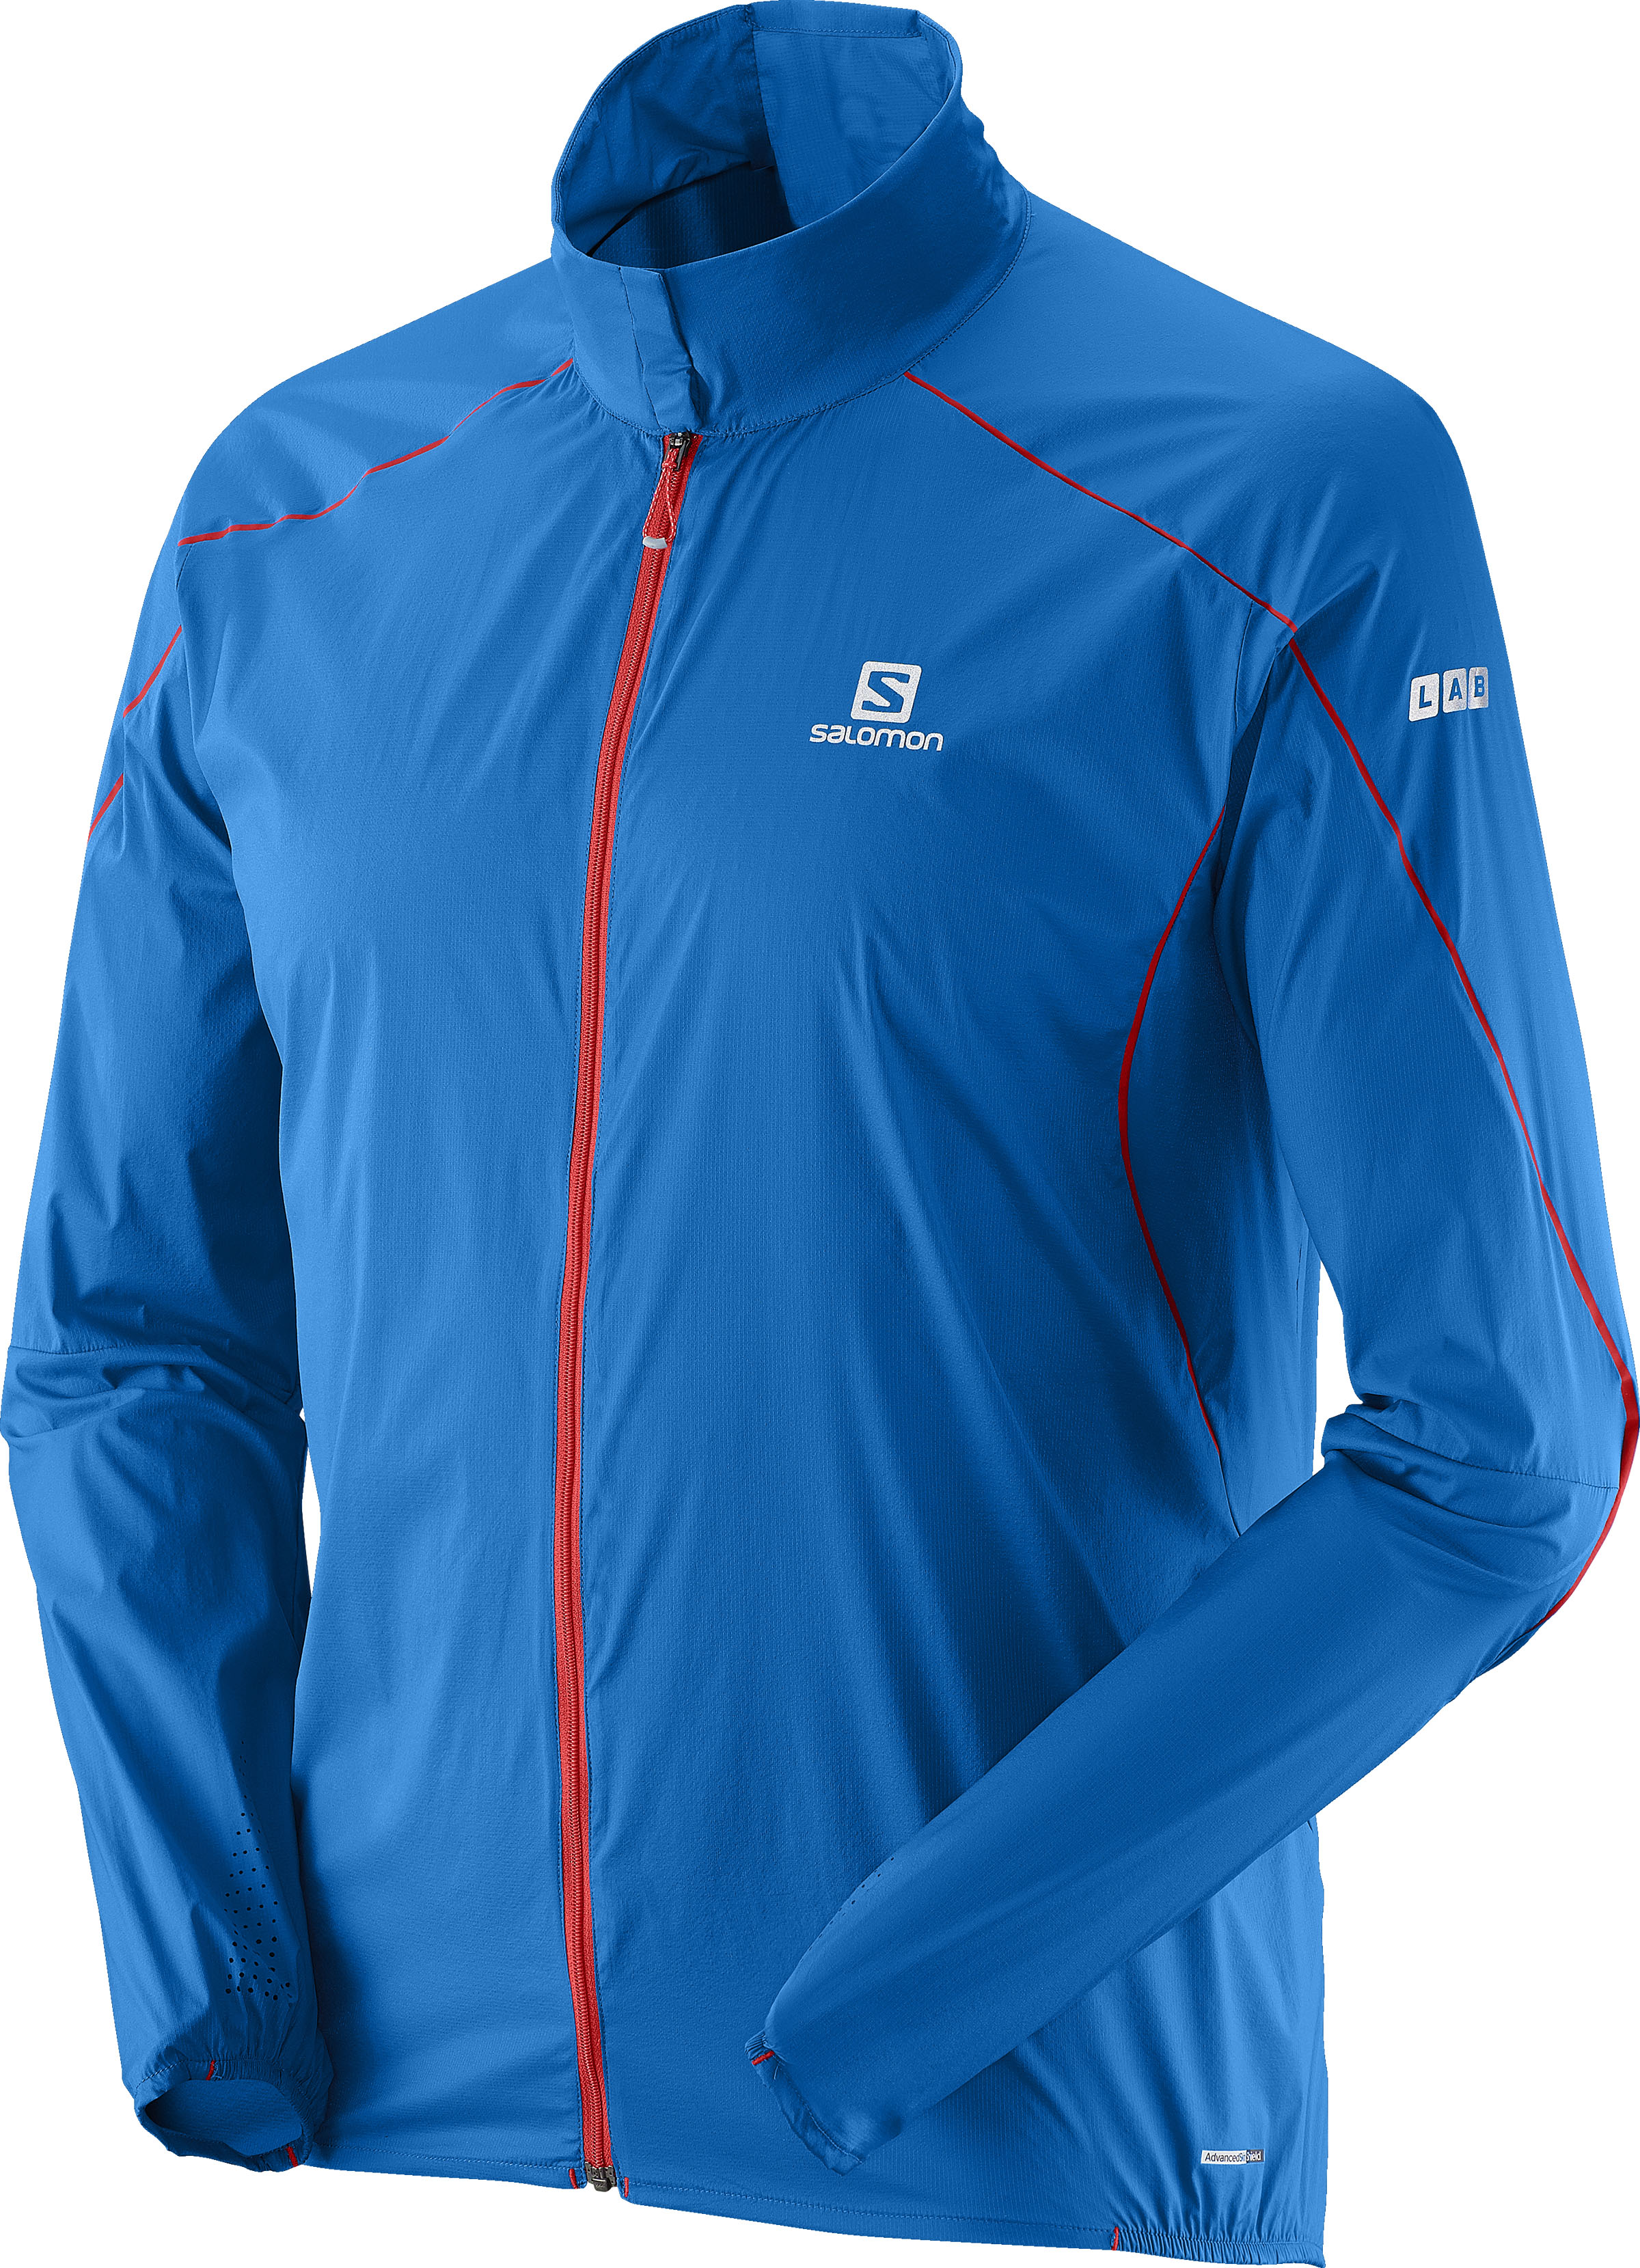 Salomon S-Lab Light Jacket 372150 modrá S